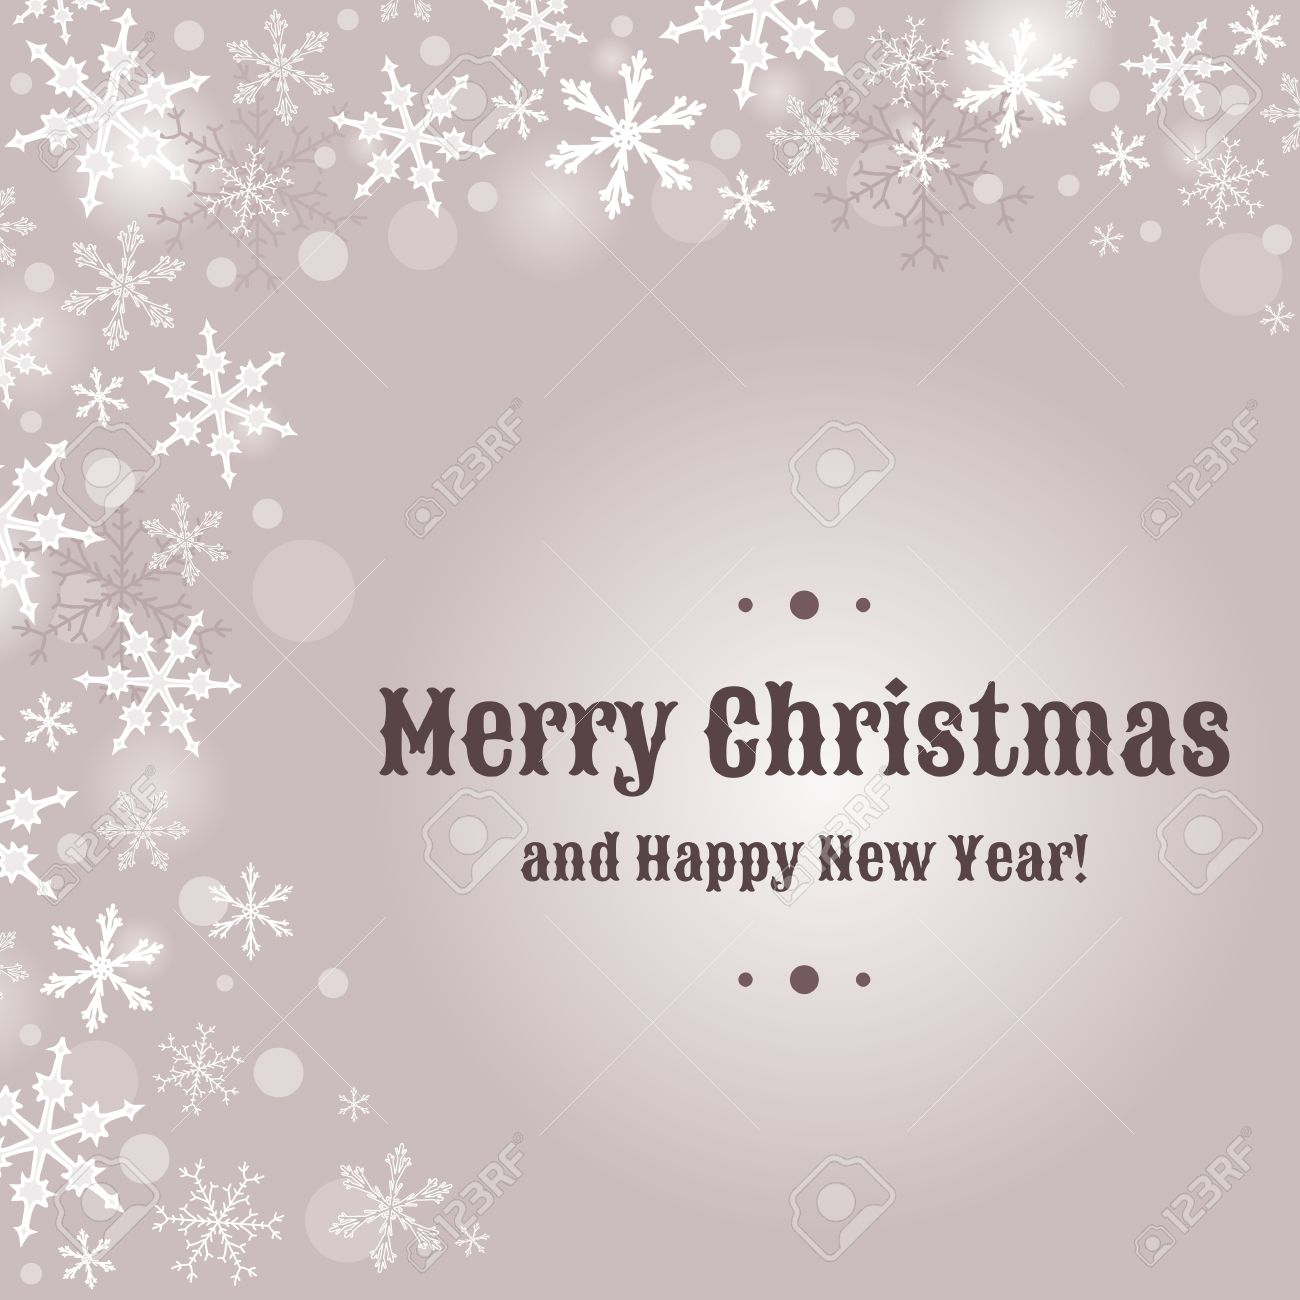 Merry Christmas Card Design With Snow Flakes Sample Text – Sample of Christmas Greetings